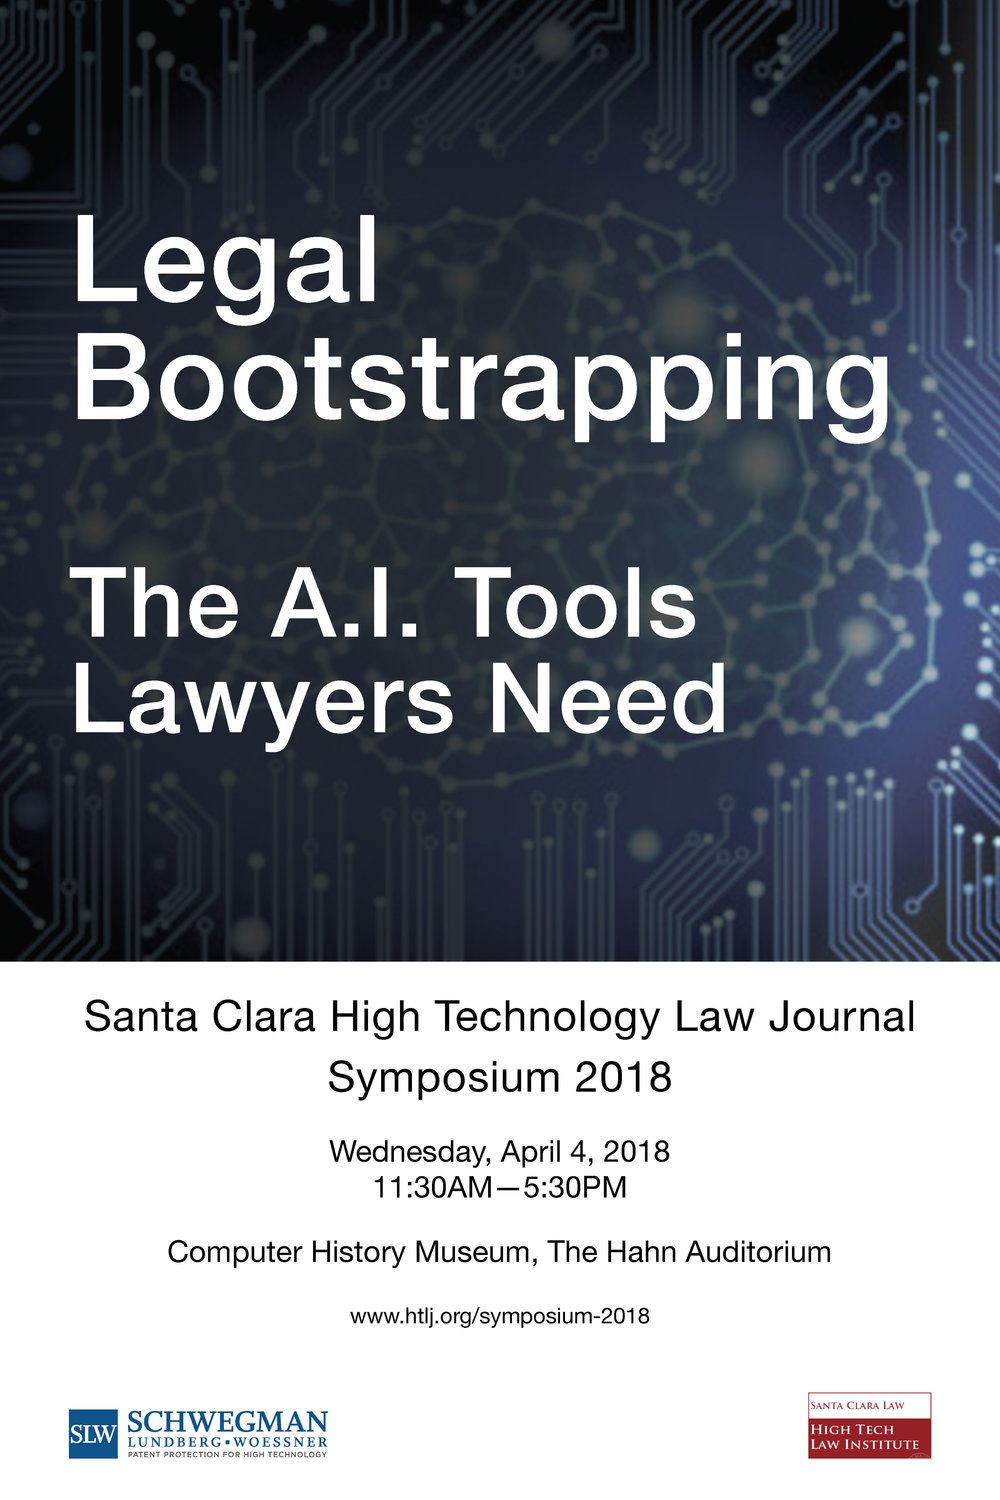 That's a Wrap! - In case you missed it, the Santa Clara High Technology Law Journal held its 2018 Symposium, Legal Bootstrapping — The A.I. Tools Lawyers Need, this Wednesday, April 4th, 2018. For highlights, click here.